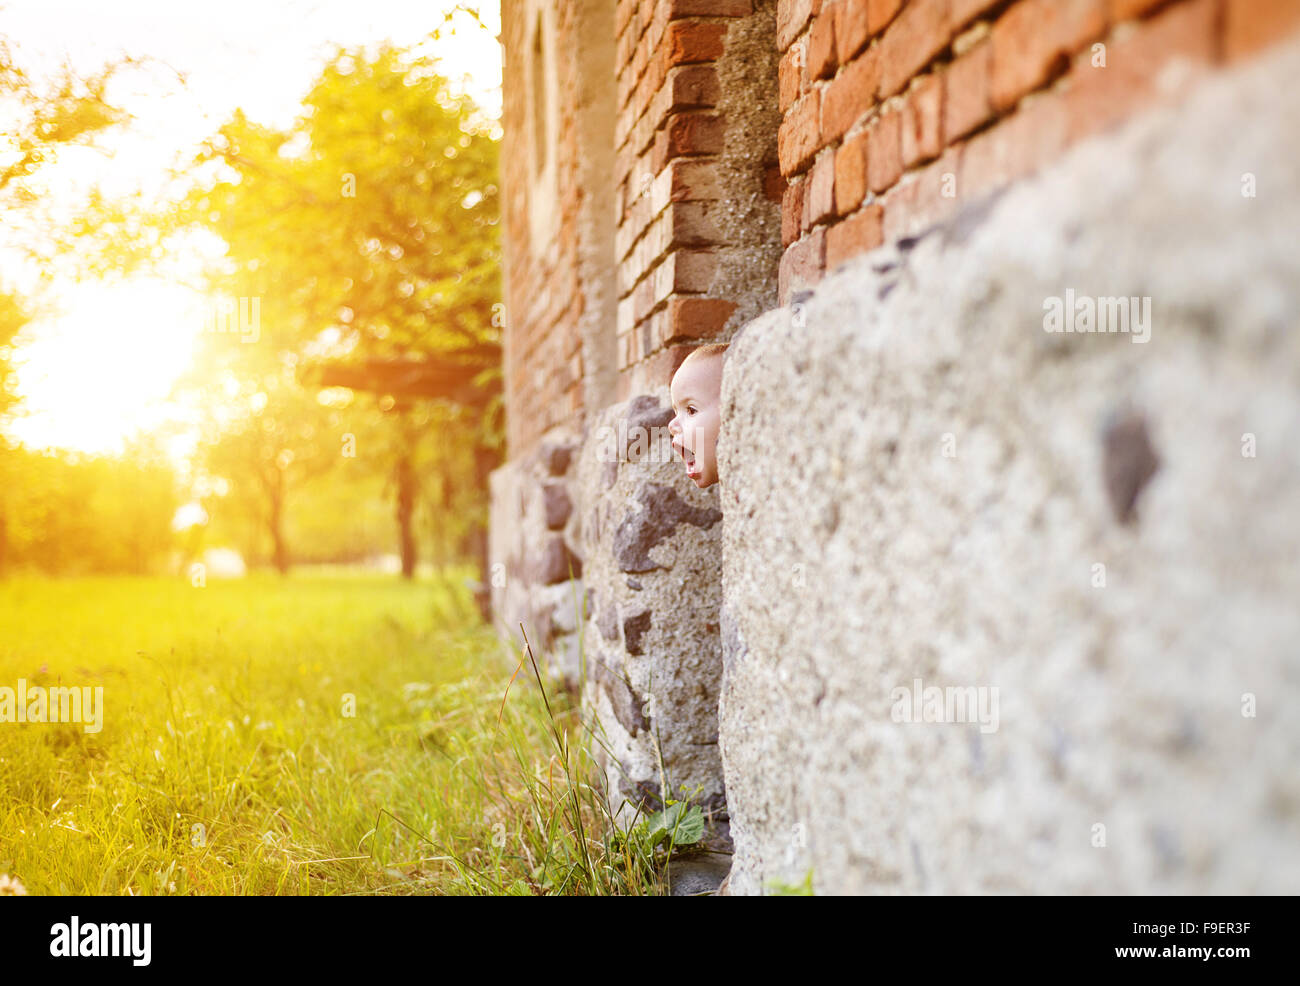 Cute little boy playing and having fun outside in a garden in front of an old house - Stock Image